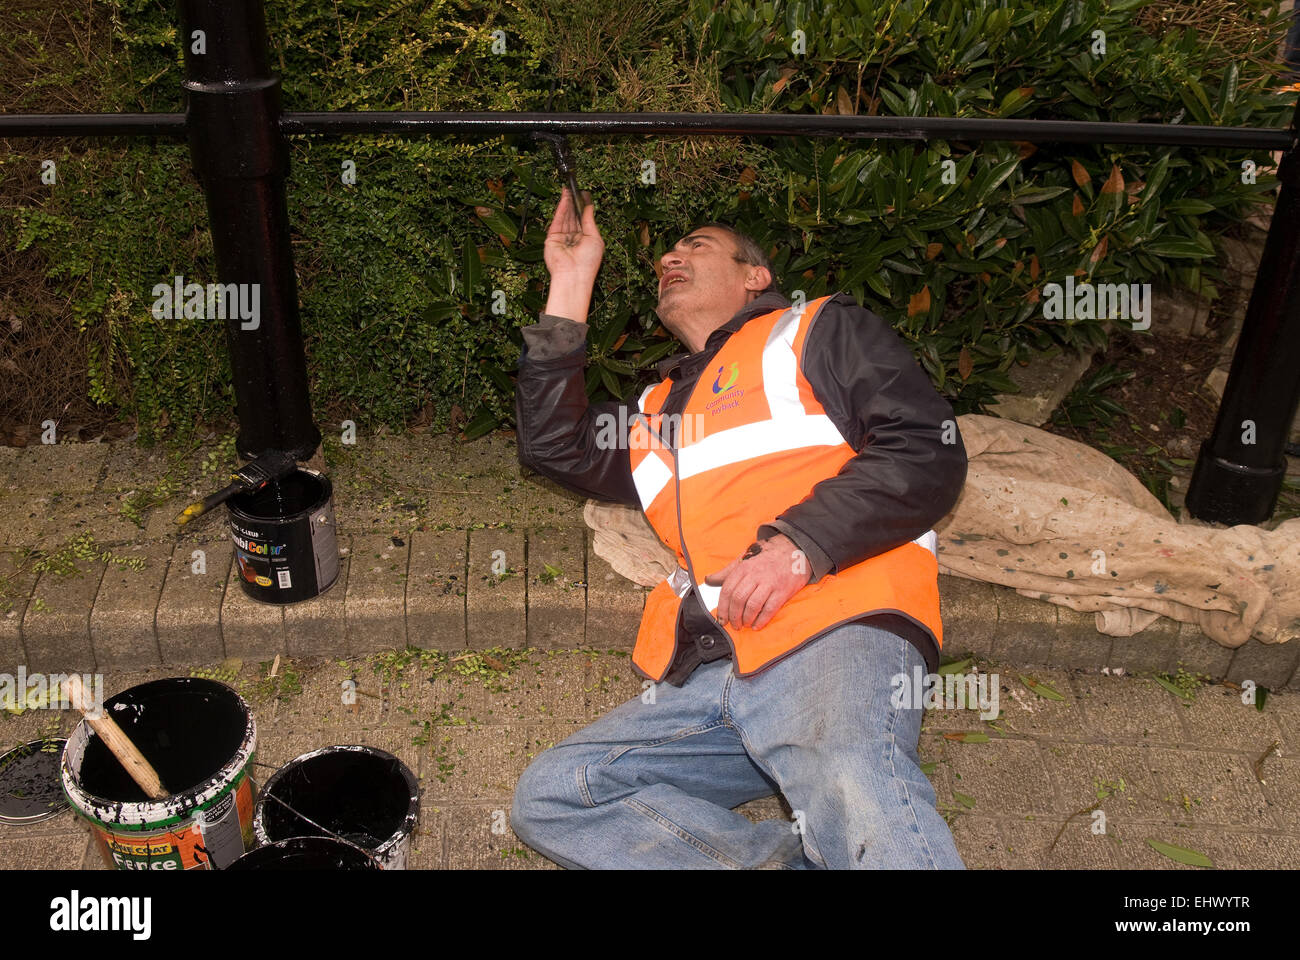 Convicted offender undertaking Community Payback task painting railings, Petersfield, Hampshire, UK. - Stock Image